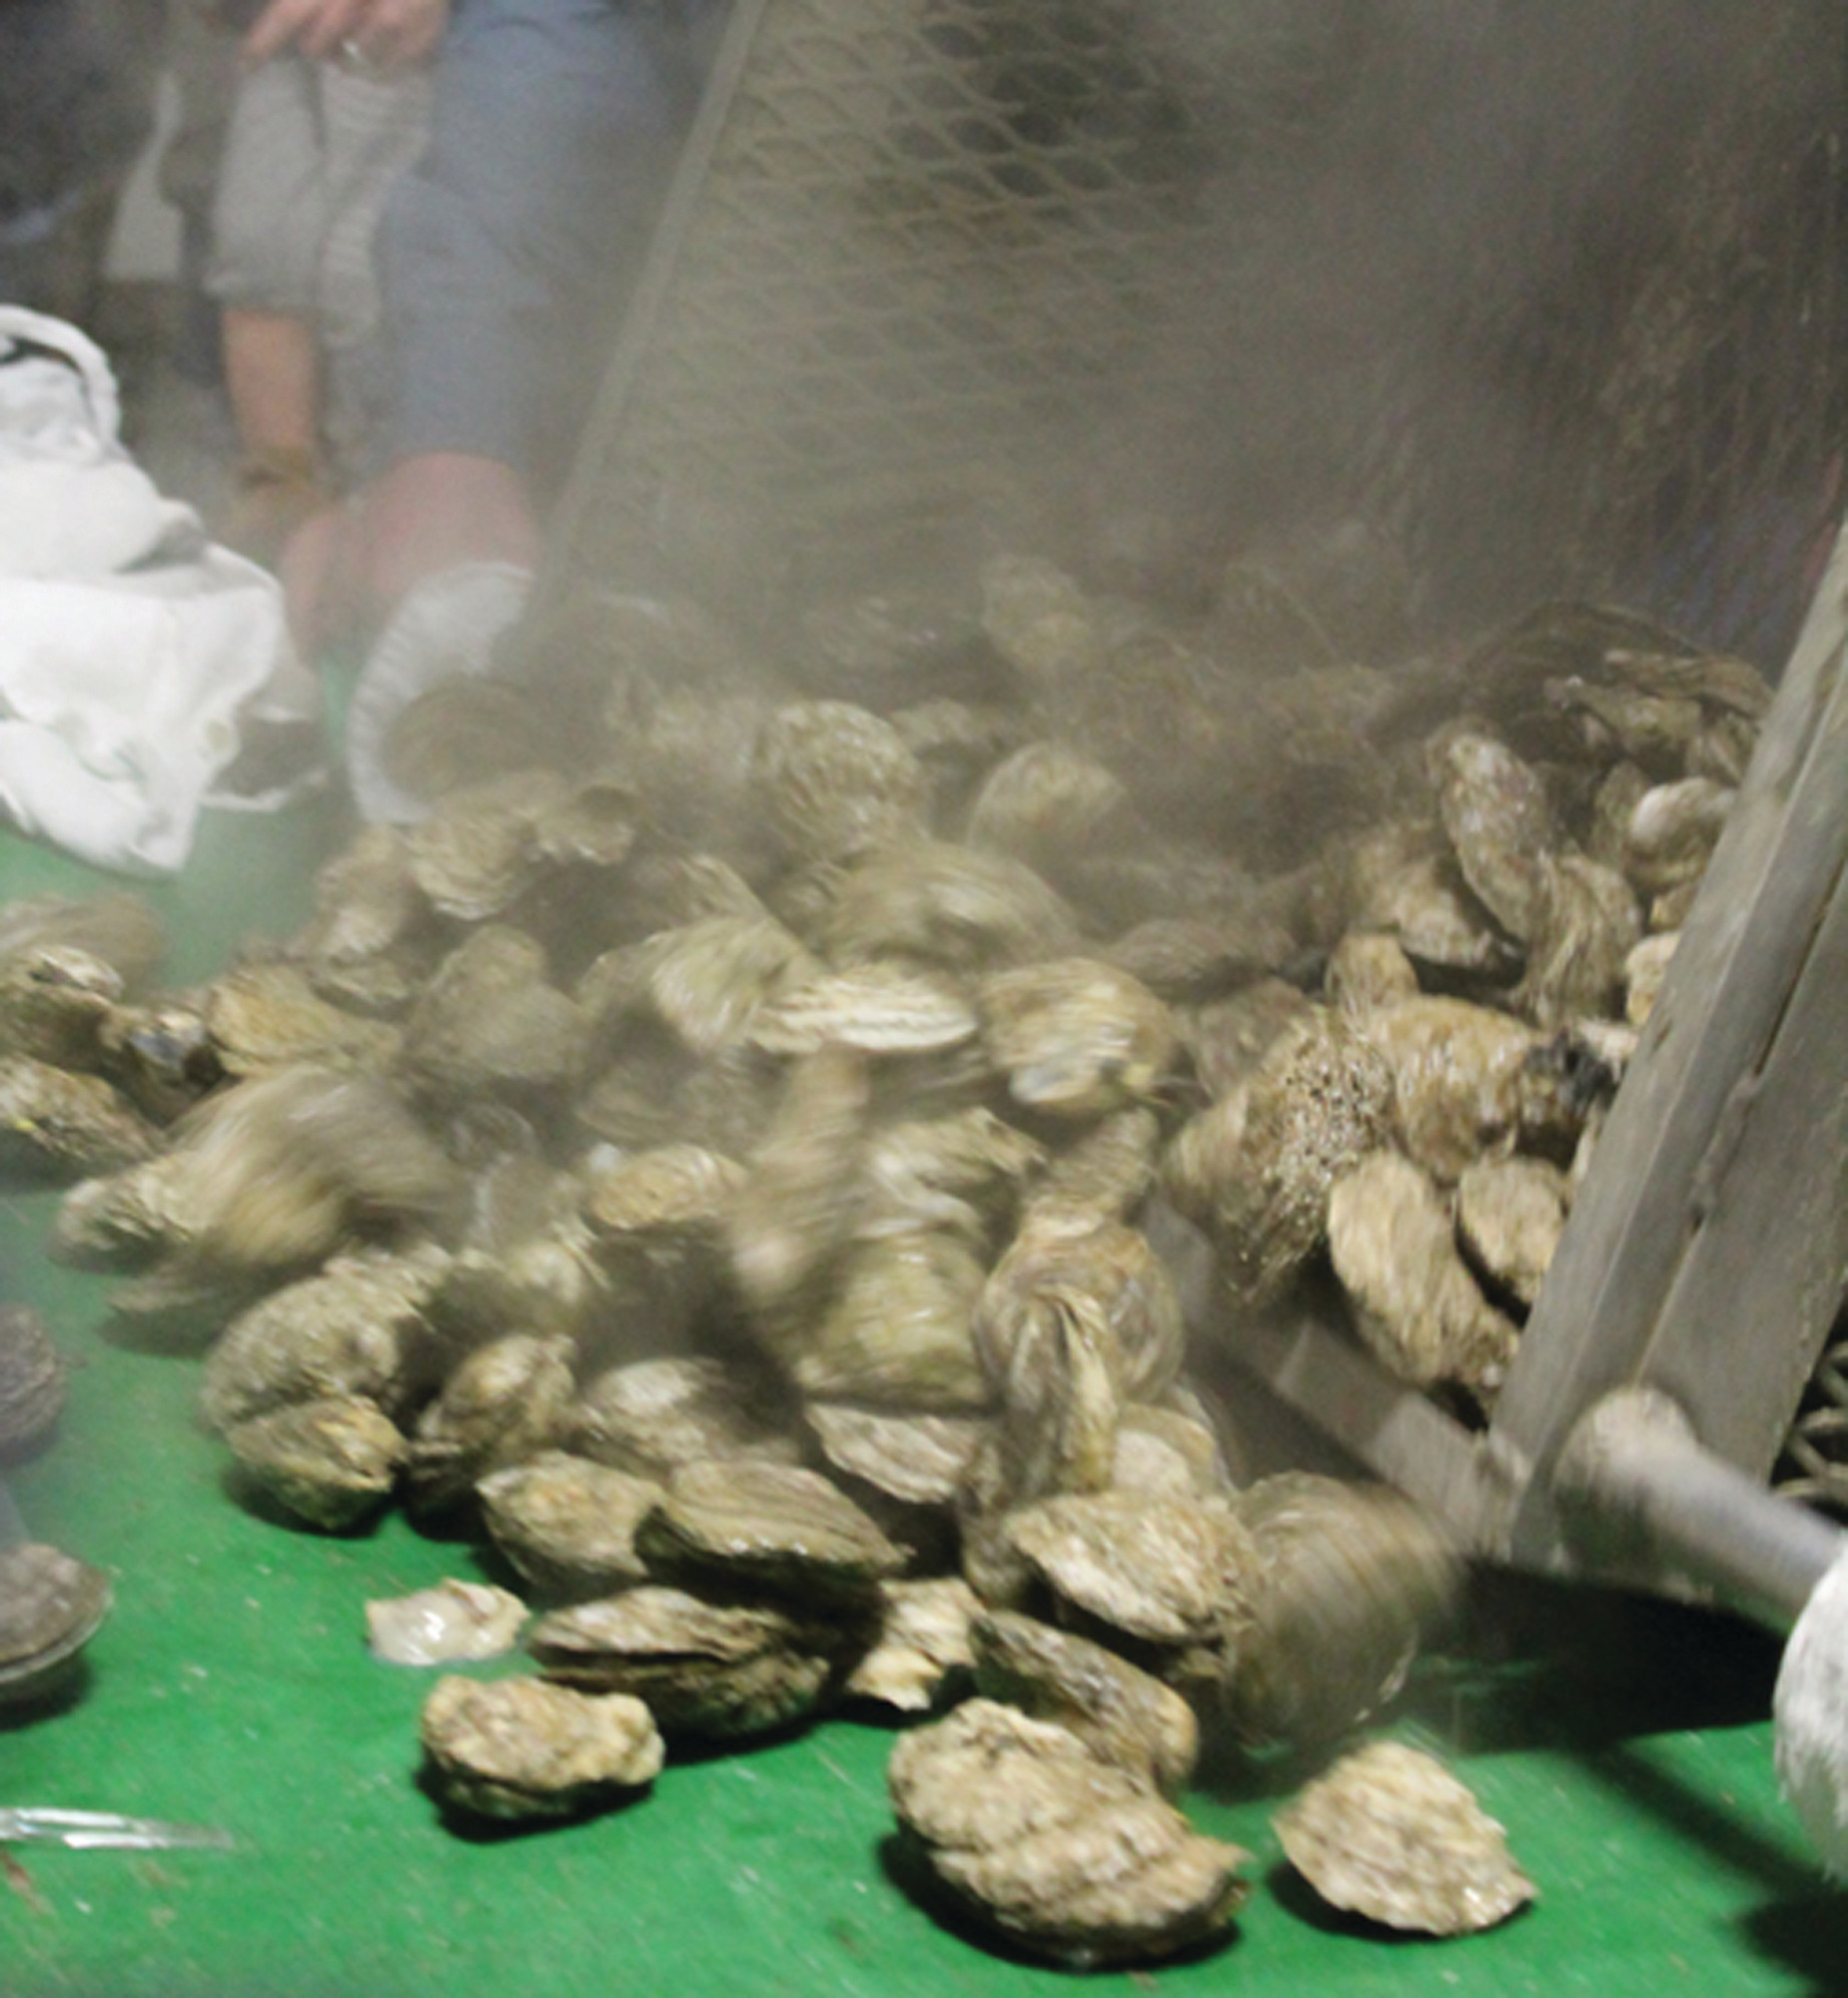 More than 3,600 pounds of oysters were enjoyed at the St. Matthias Oyster Roast on Jan. 20 at the Flowers' Tomato Shed off U.S. 301 between Ram Bay and Summerton.